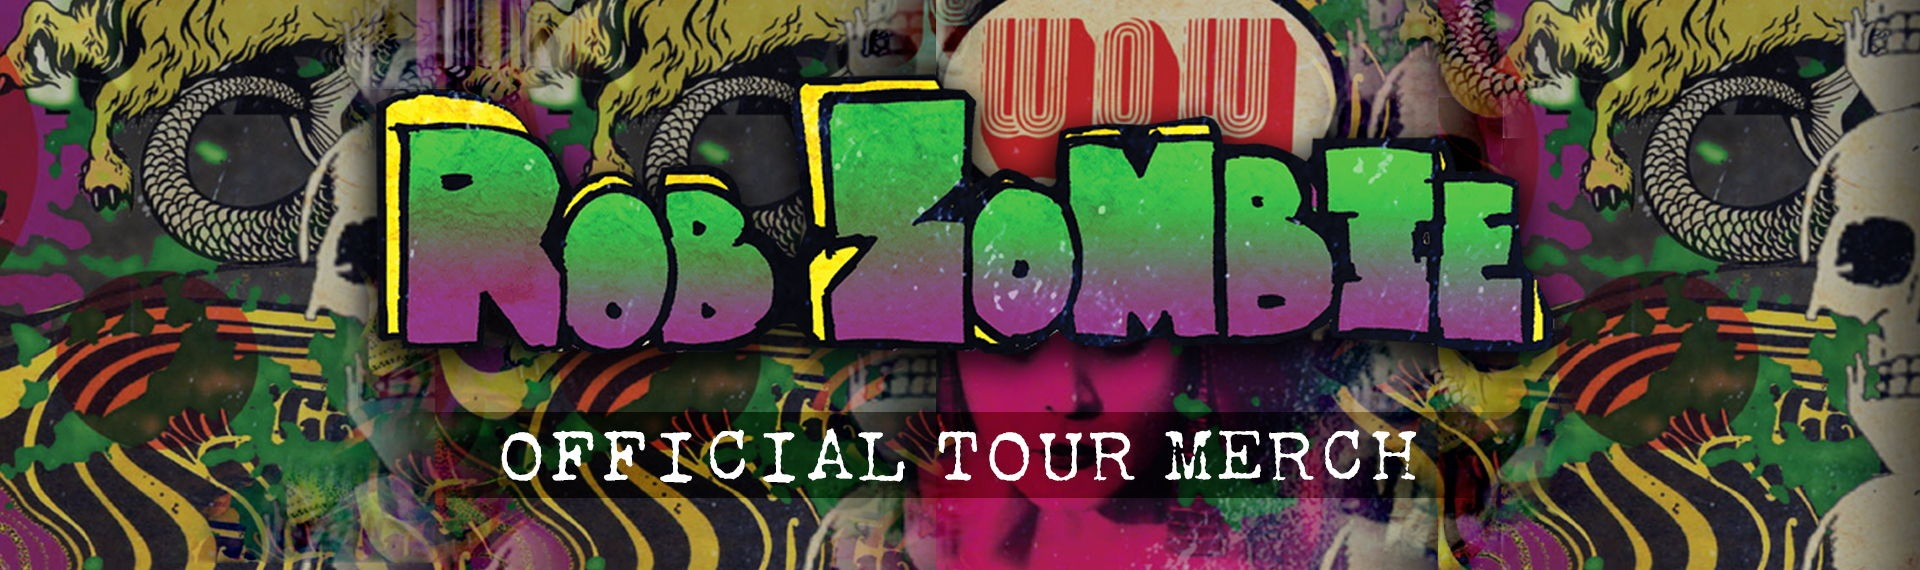 Official Rob Zombie Tour Merchandise Store